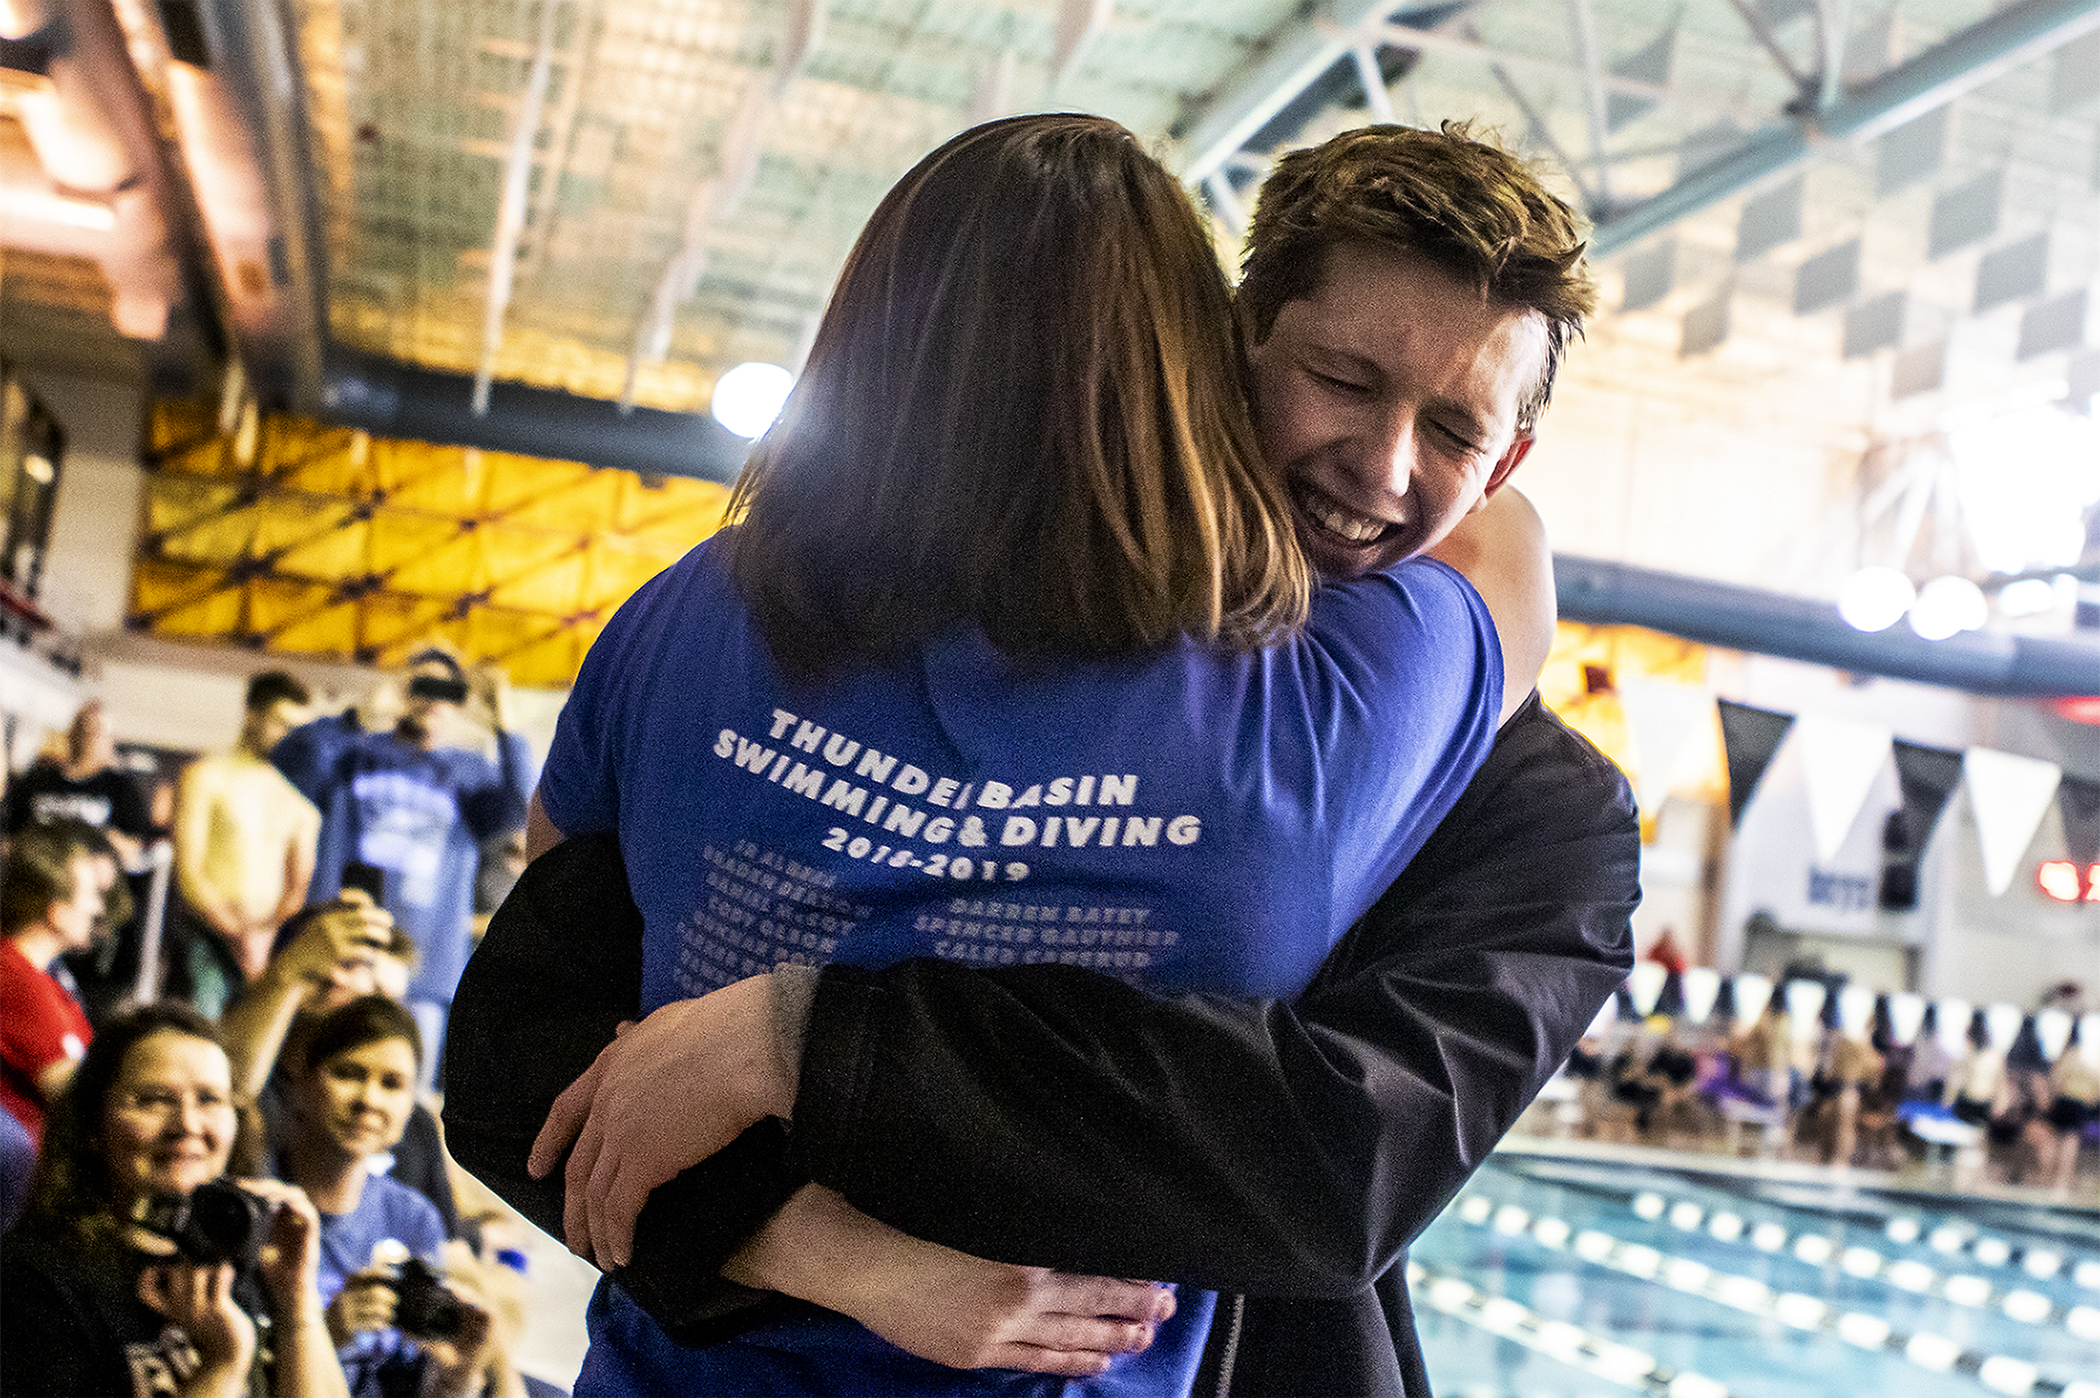 The Bolts' JR Albers hugs Bolts Swimming Coach Jade Moser as he accepts his gold medal for the boys 500 yard freestyle at the Campbell County Aquatic Center during the 4A Swim and Dive Championships on Friday, Feb. 15, 2019.